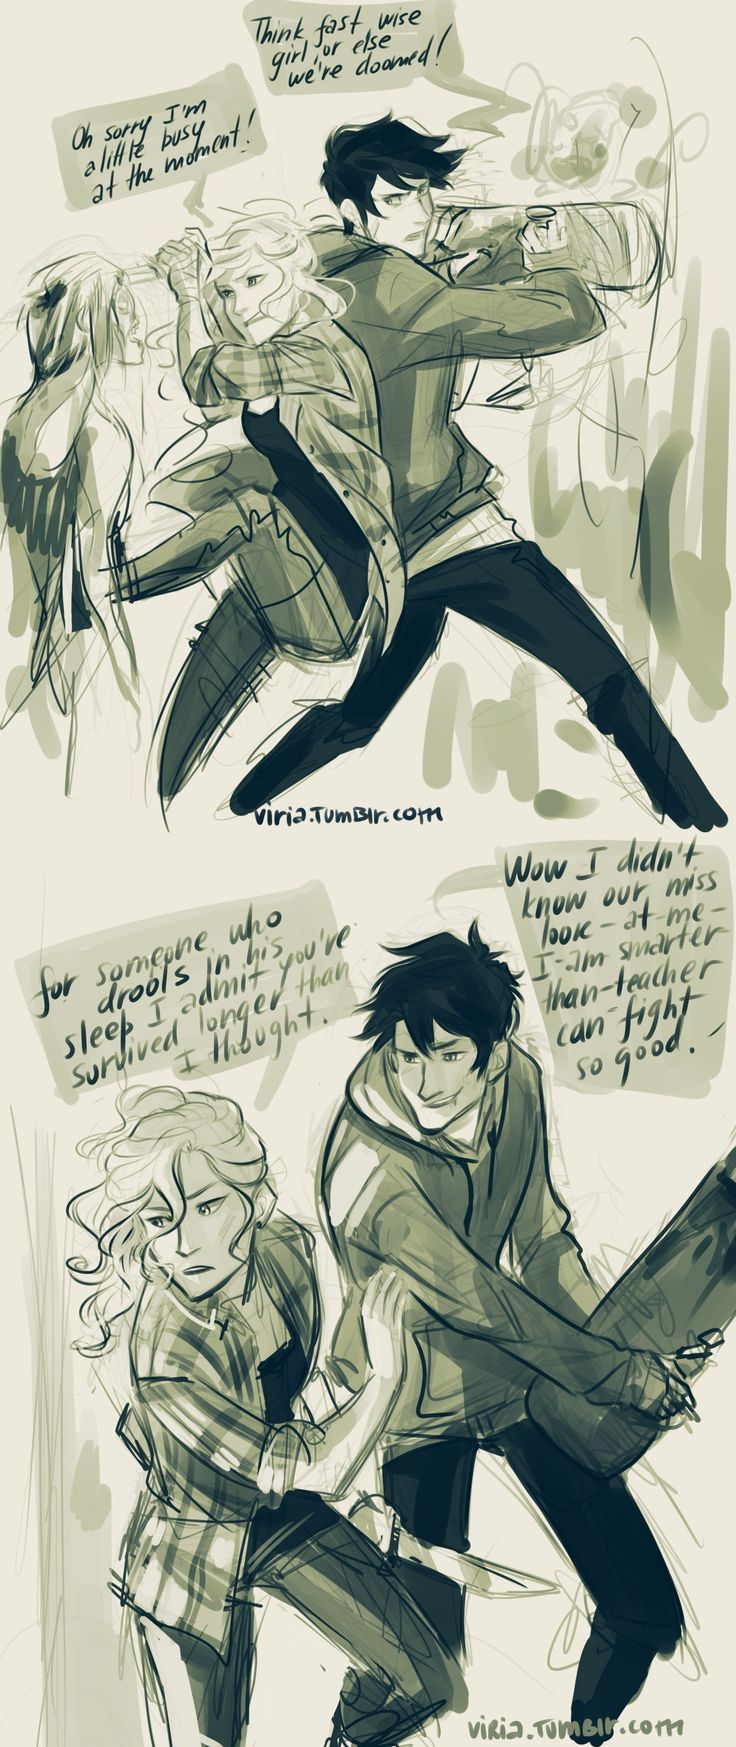 viria: -I saved your life. -Oh, don't give yourself too much credit, Seaweed Brain. so basically someone wrote 'percabeth zombie au' in my askbox and the exact same second I closed everything and started drawing because zombie apocalypse aus are always like the best thing.